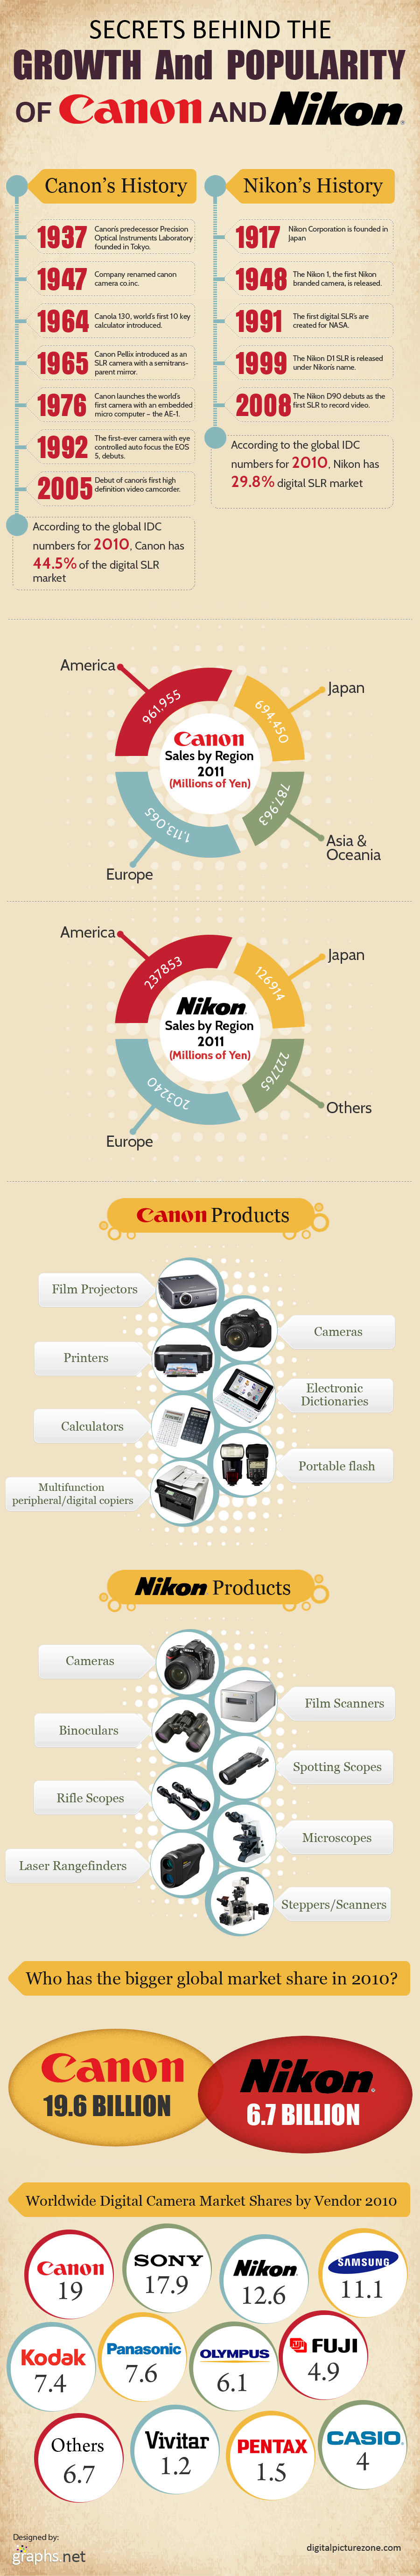 Secrets-Behind-the-Growth-and-Popularity-of-Canon-and-Nikon